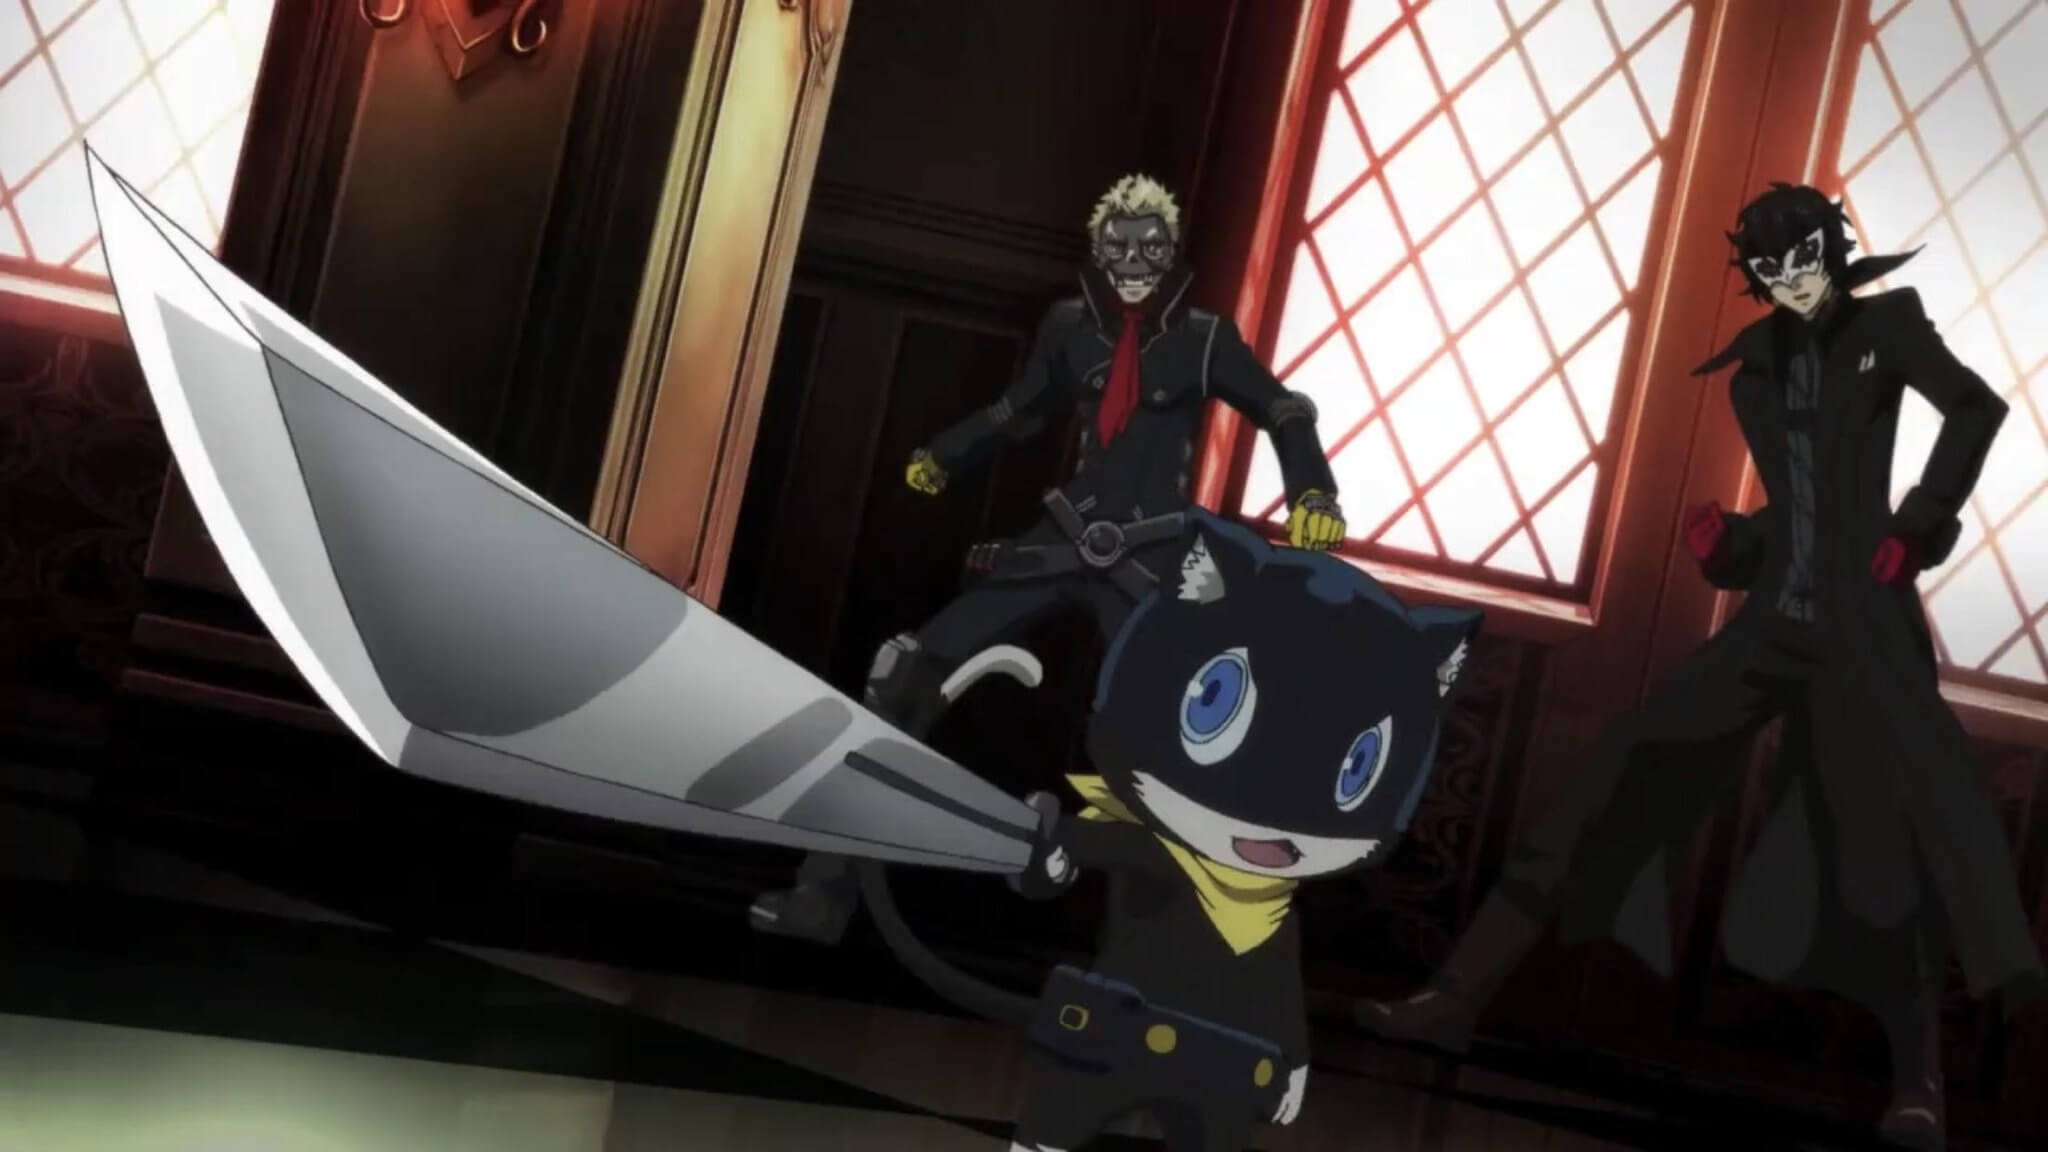 Persona 5 The Animation Morgana - Persona 5 The Animation - Primeiras Impressões